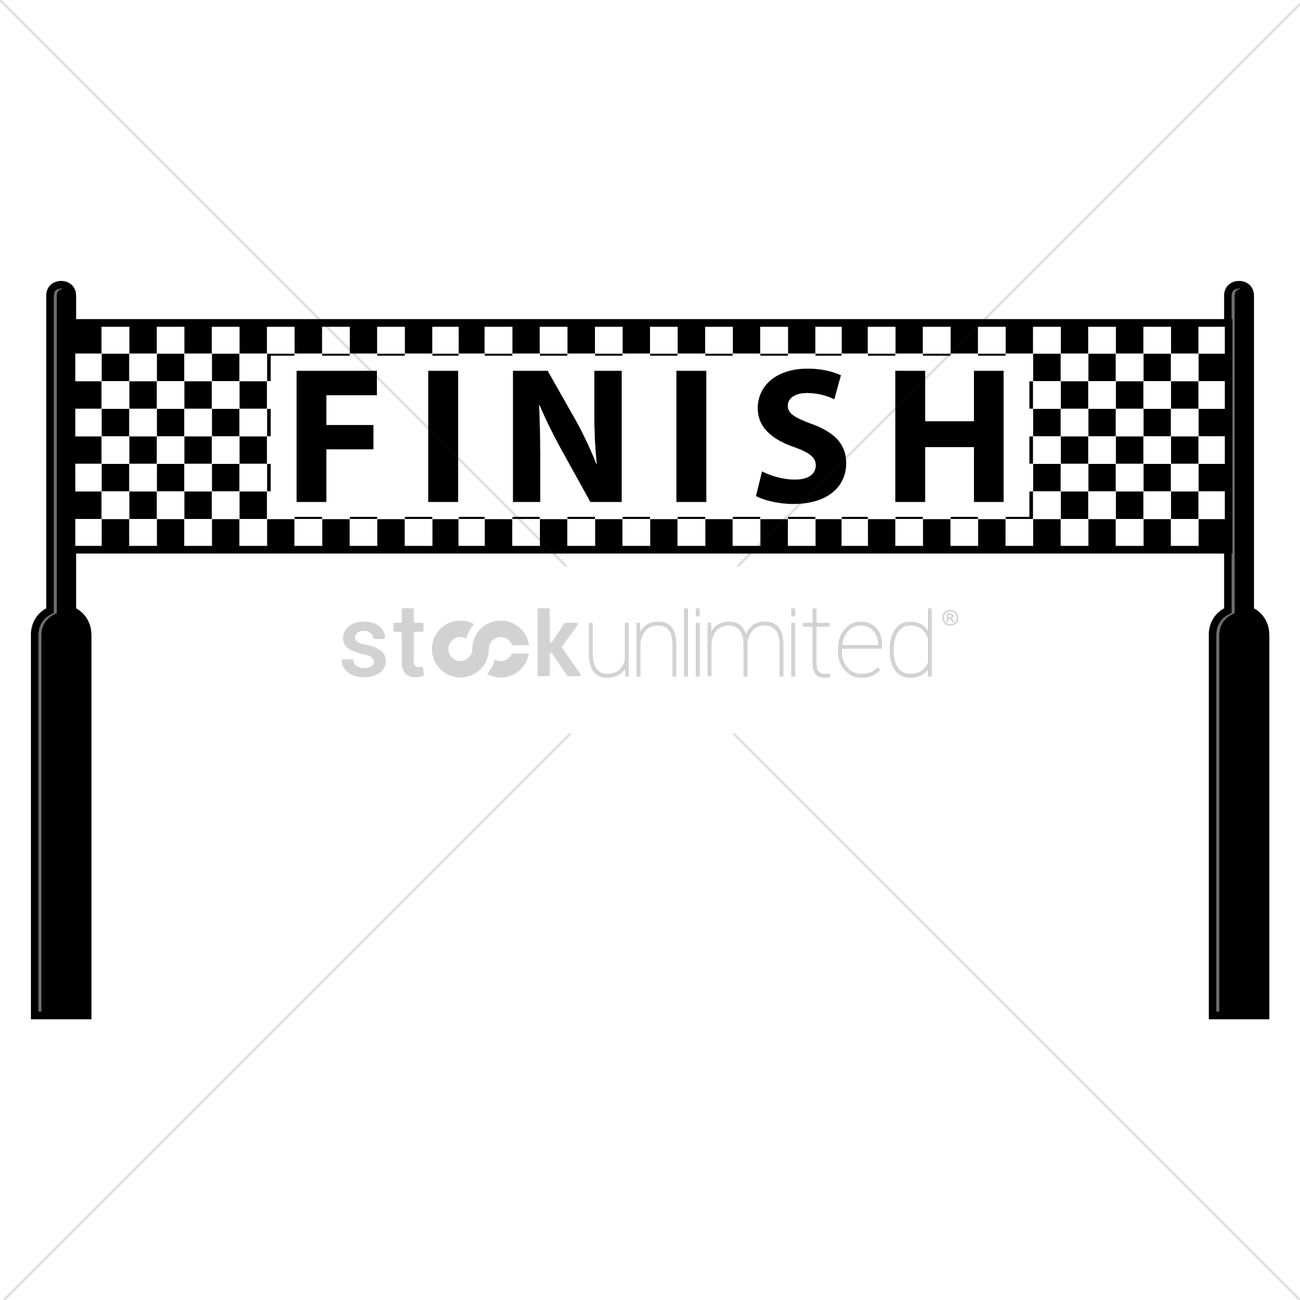 1300x1300 Finish Line Vector Image